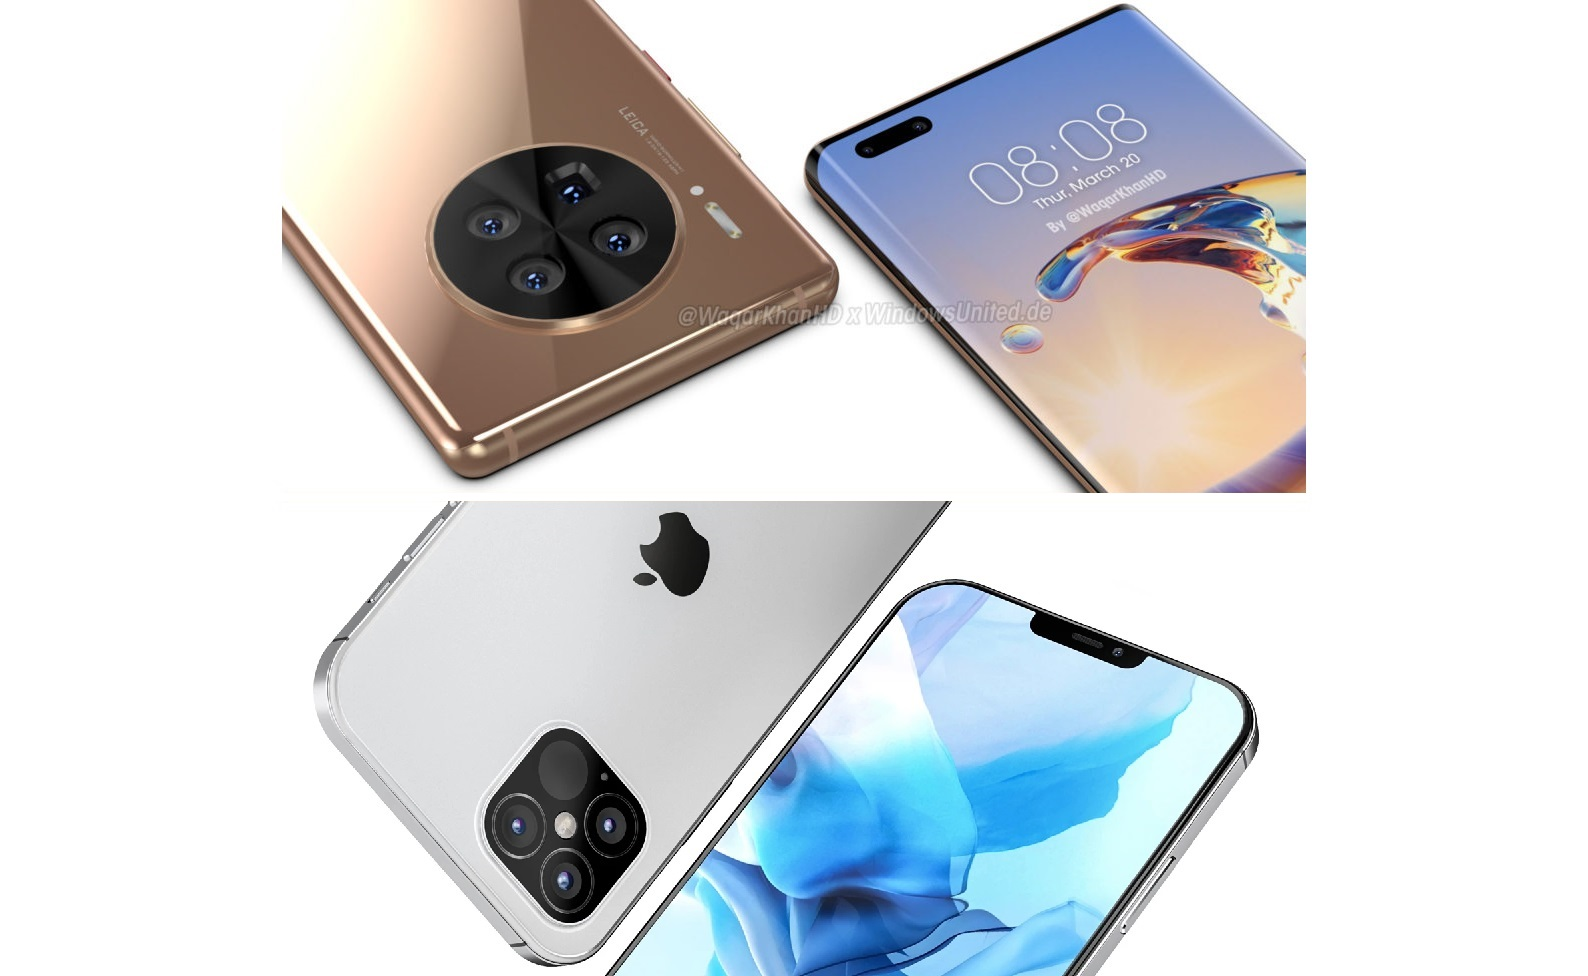 New Huawei Mate 40 Pro renders based on leaks and CAD files show it to be a beauty that can easily rival the iPhone 12 for looks thumbnail